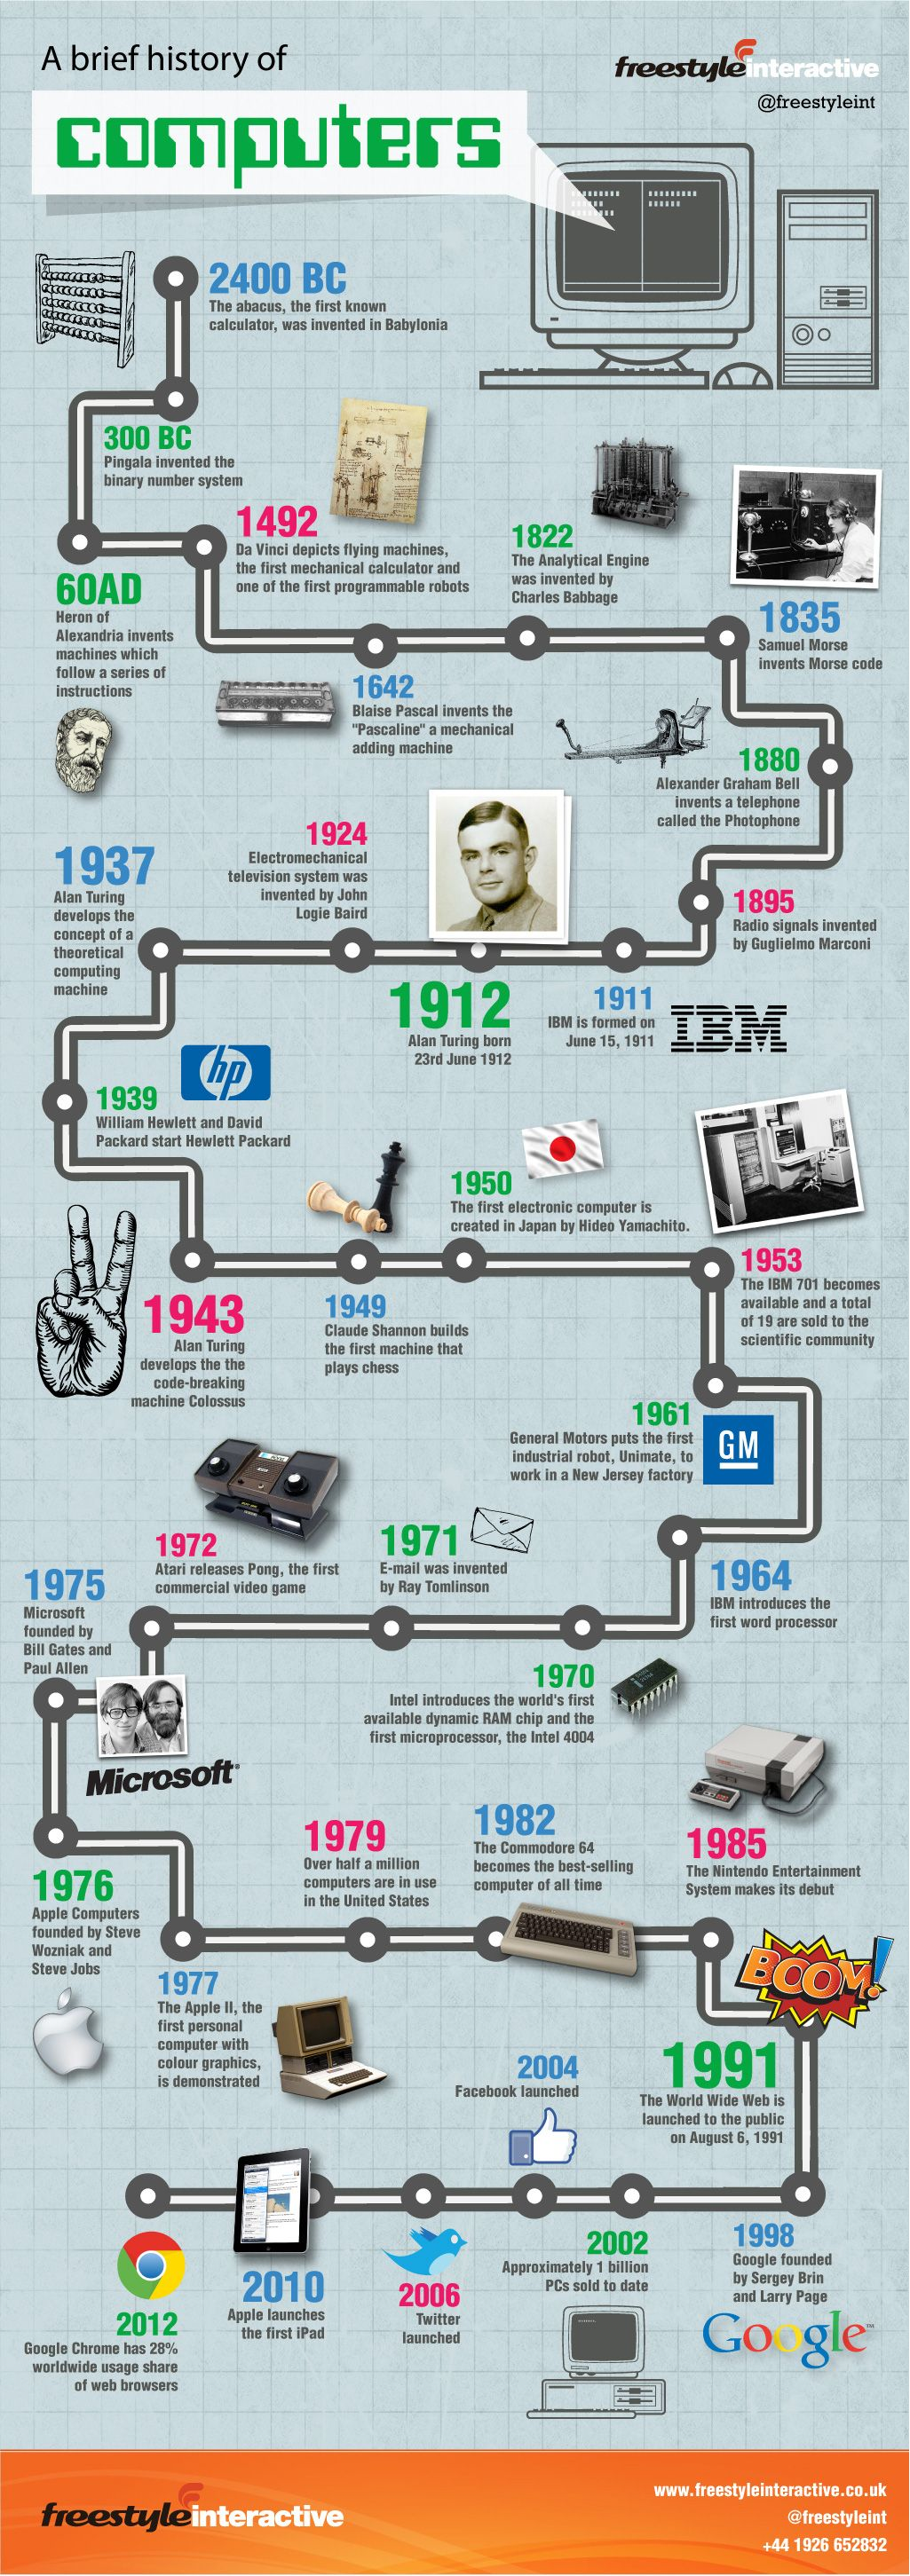 Interactive Infographic on the History of Computers